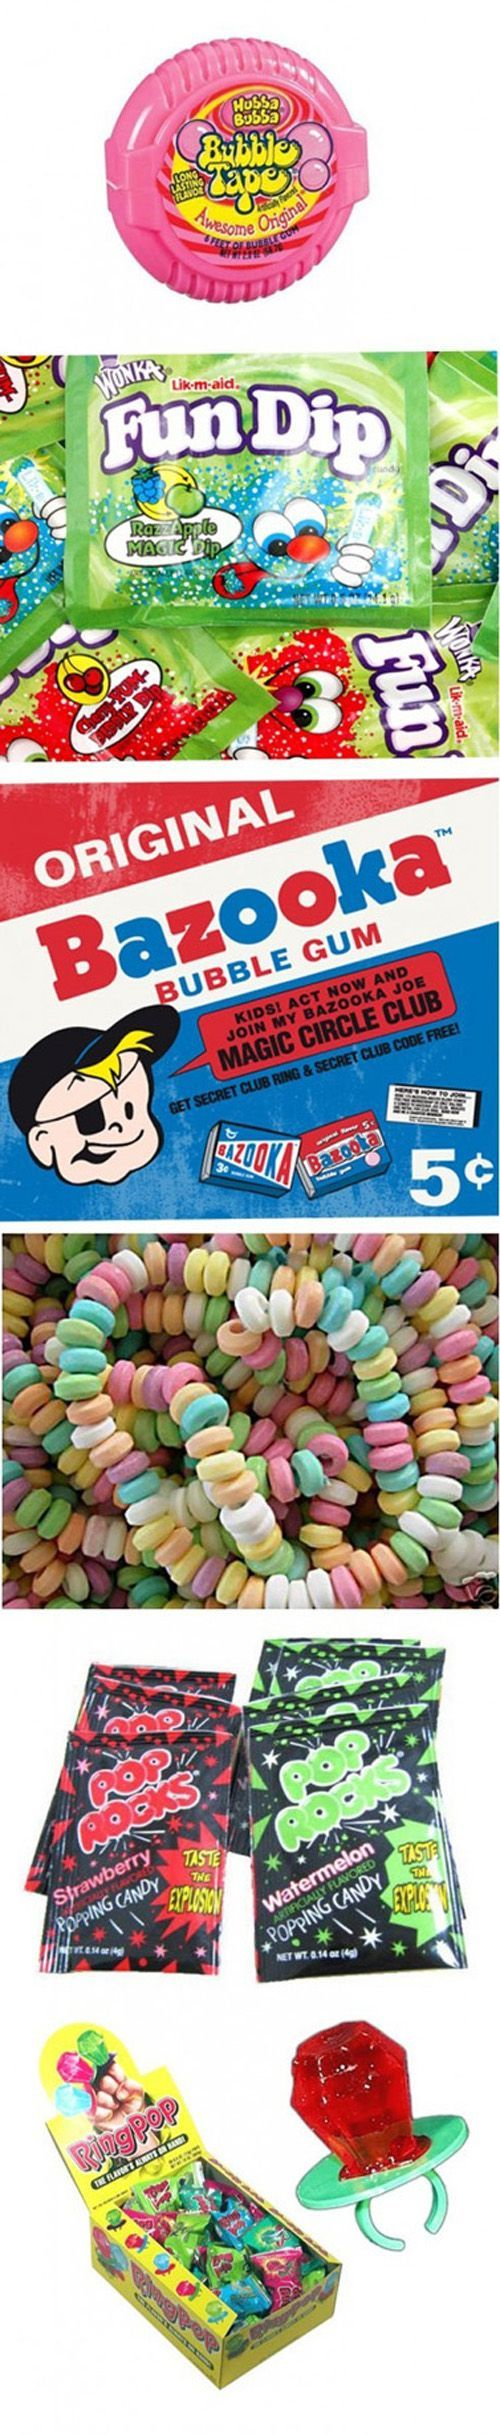 all the bad ass candy of the nineties and early two thousands.  haha  miss my childhood fo sho